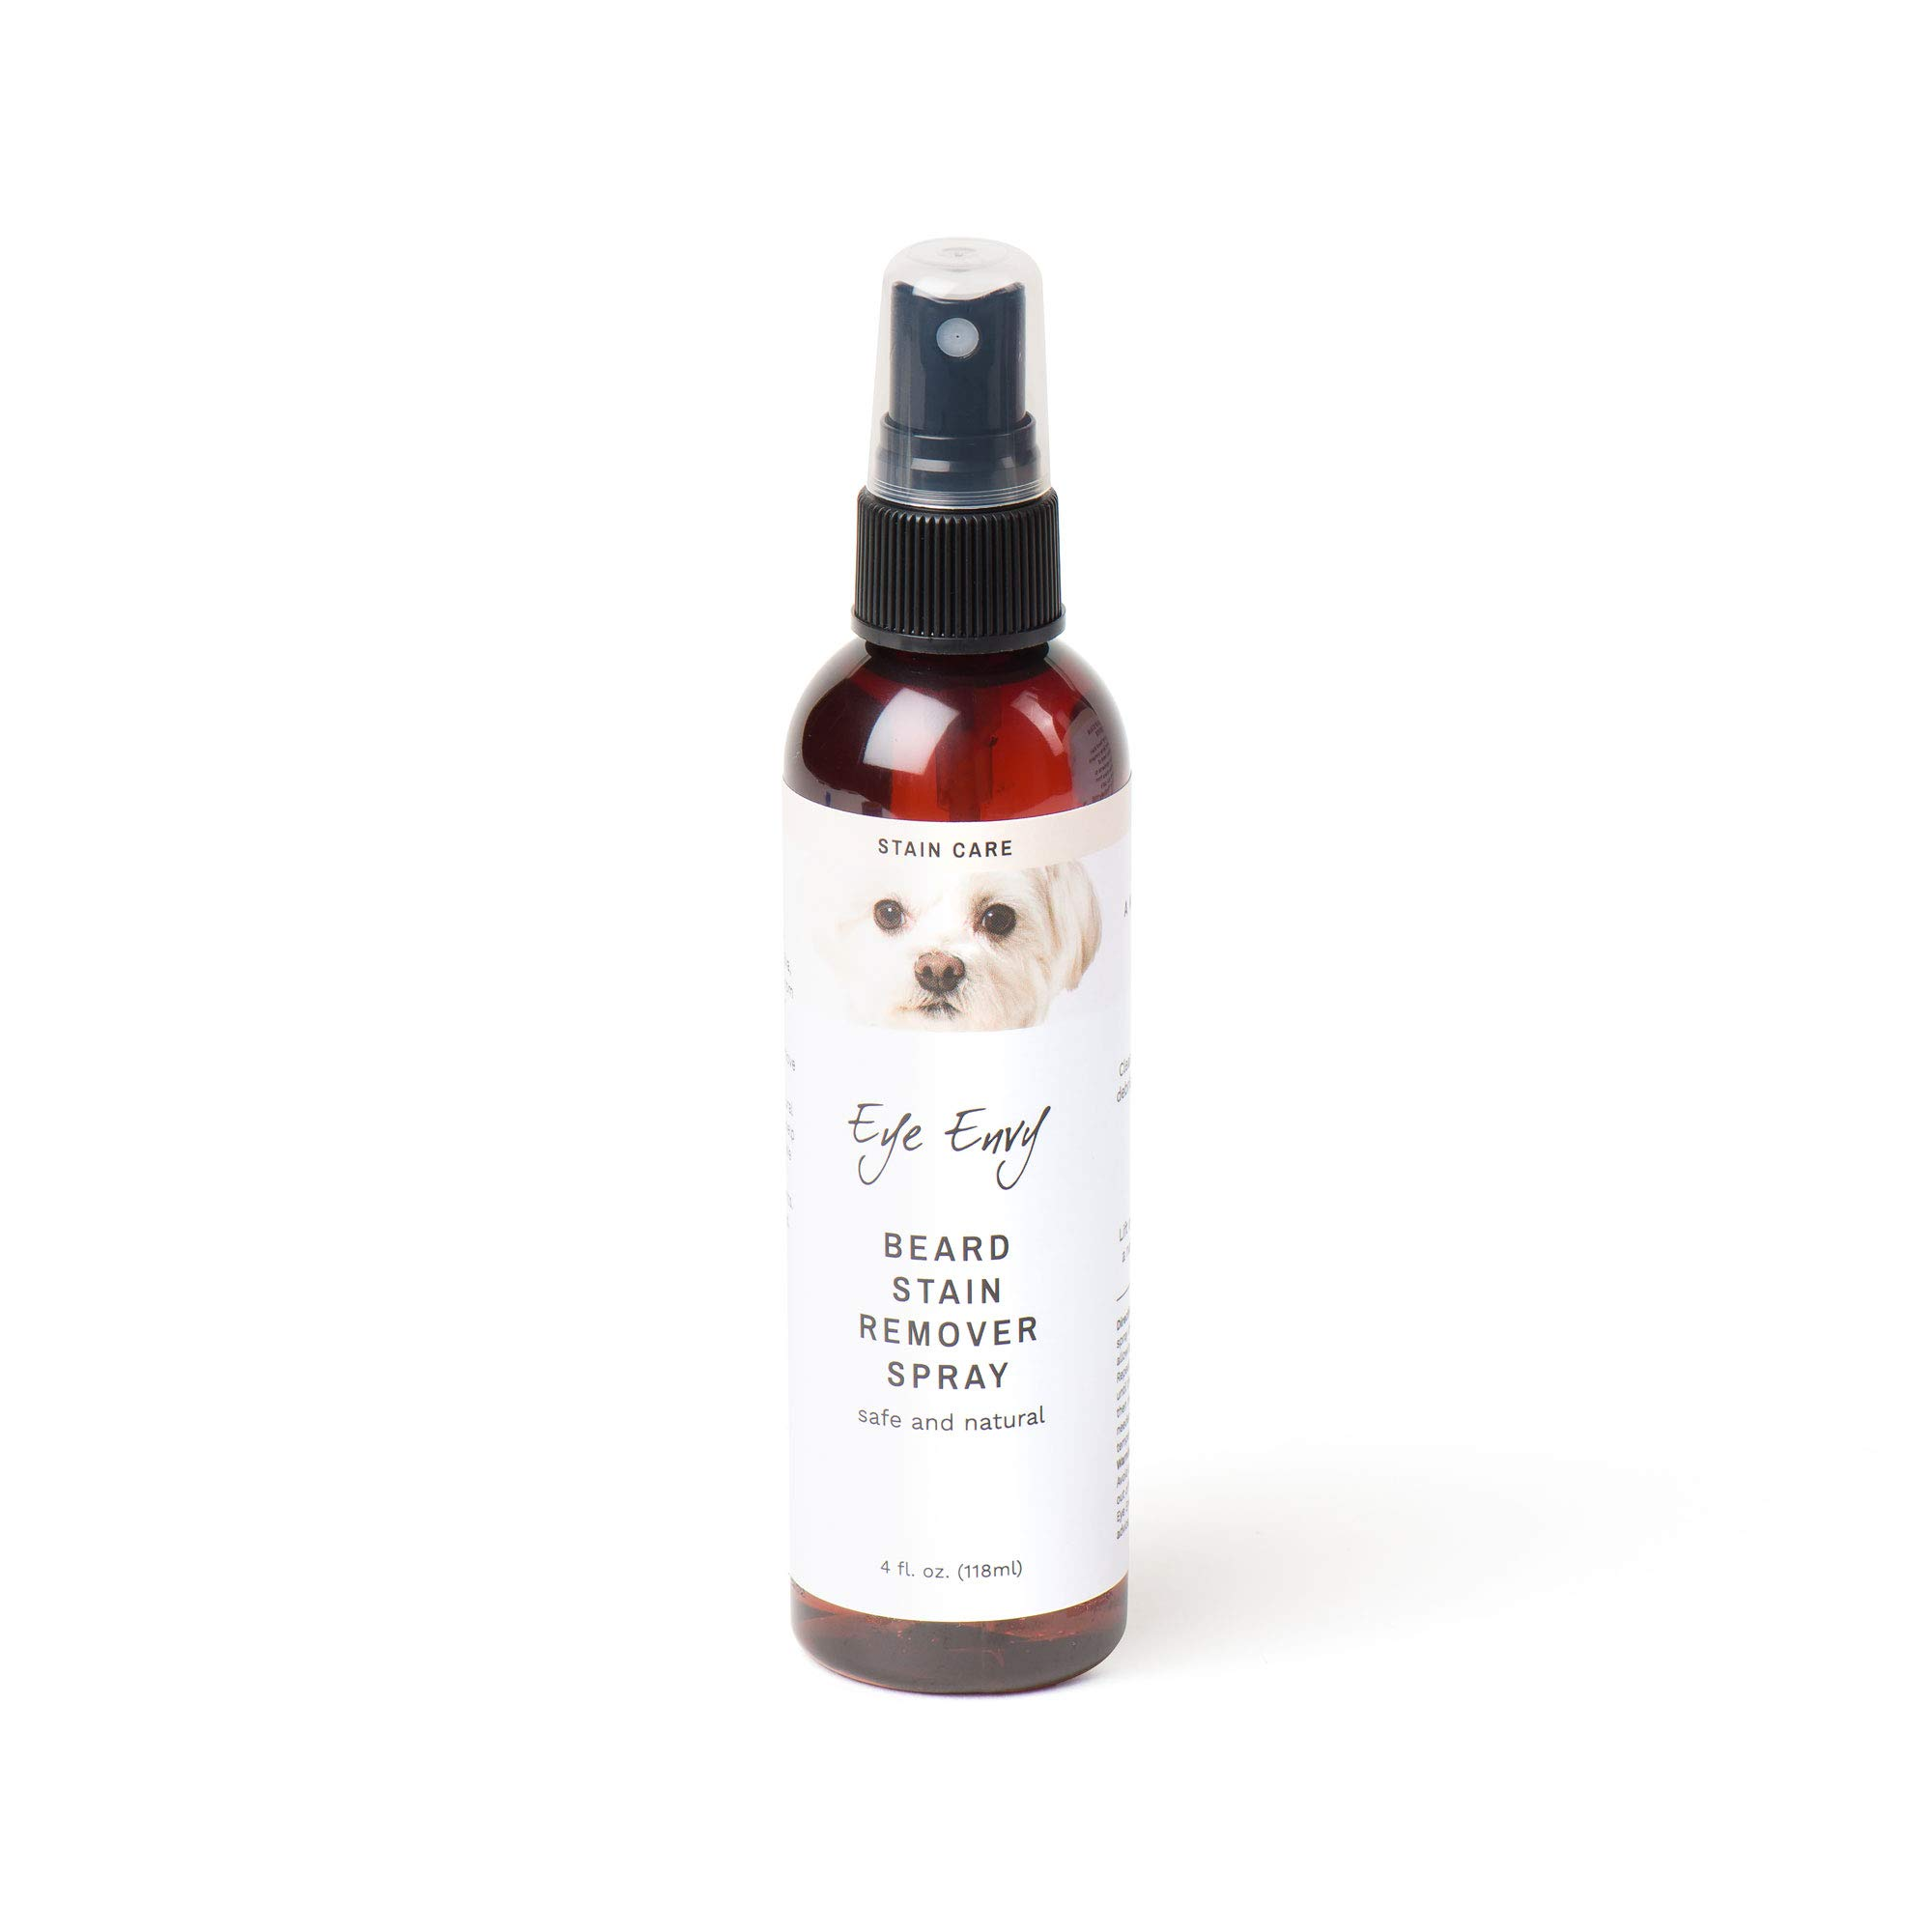 Eye Envy Beard Stain Remover Spray for Dogs/Cats 100% Natural and Safe Lift Stains from Drooling, Saliva, Food, Runoff from Tearing Treats The Cause of staining Removes Odors Keeps Beard Clean